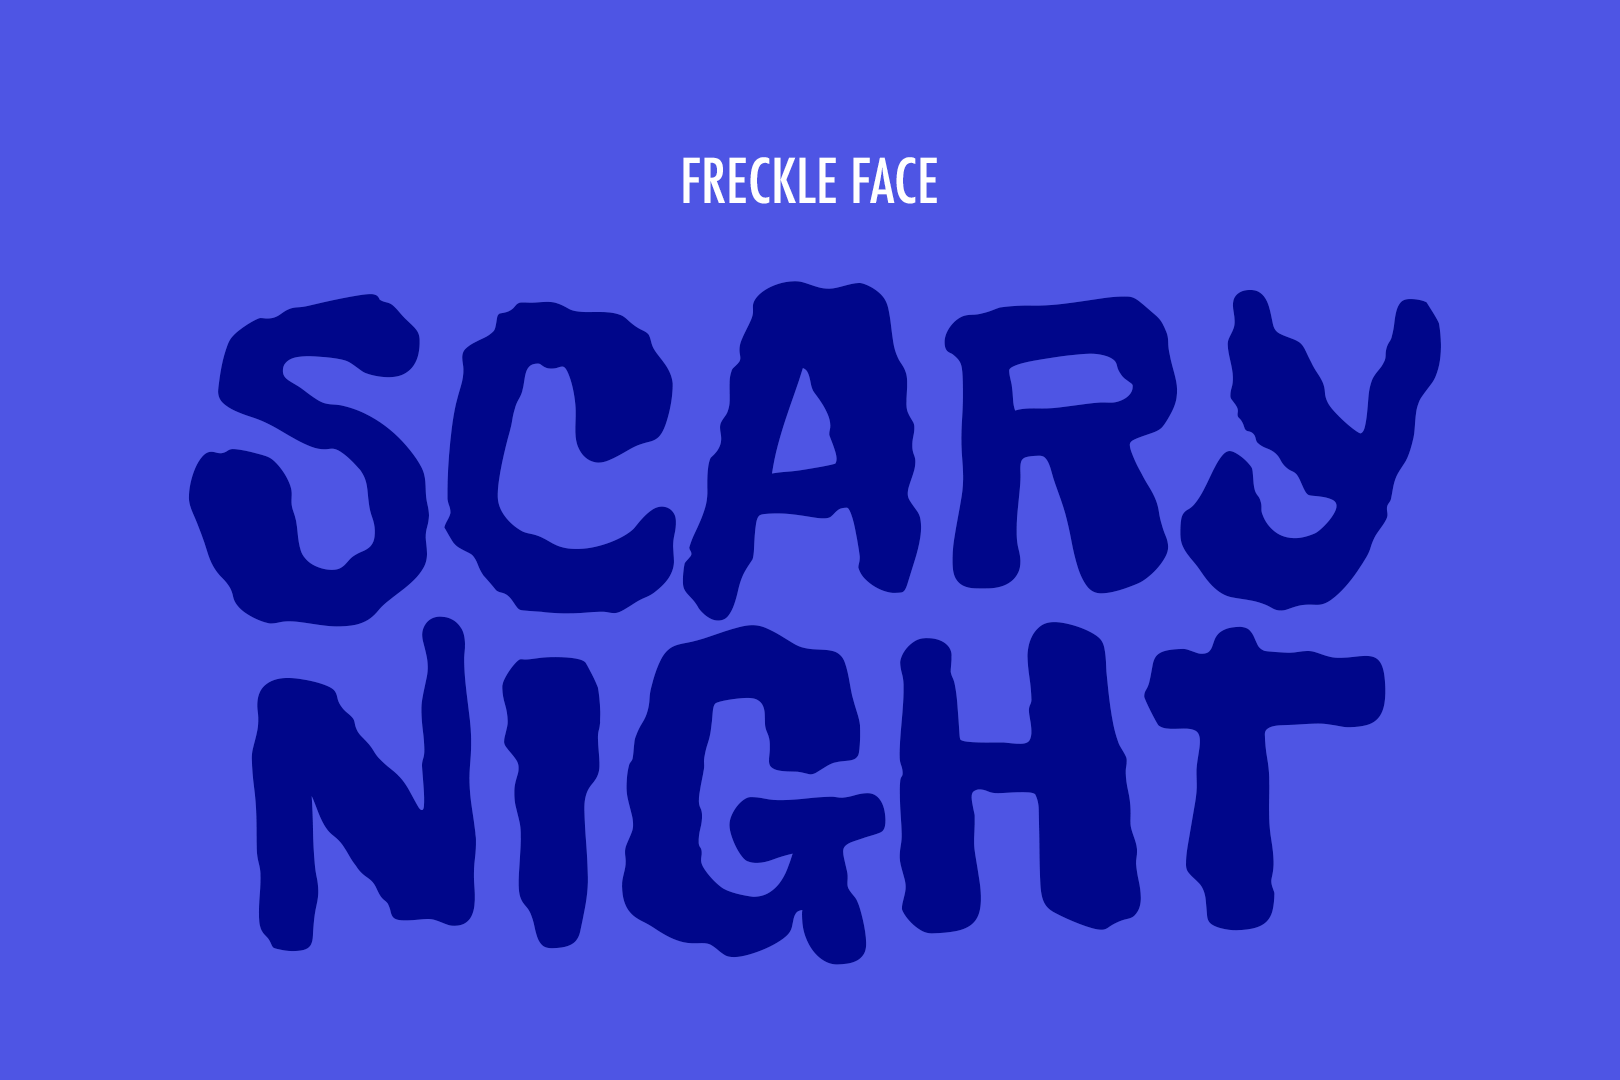 5-migliori-google-font-halloween-gratis-super-colors-freckle-face-free-fonts-halloween